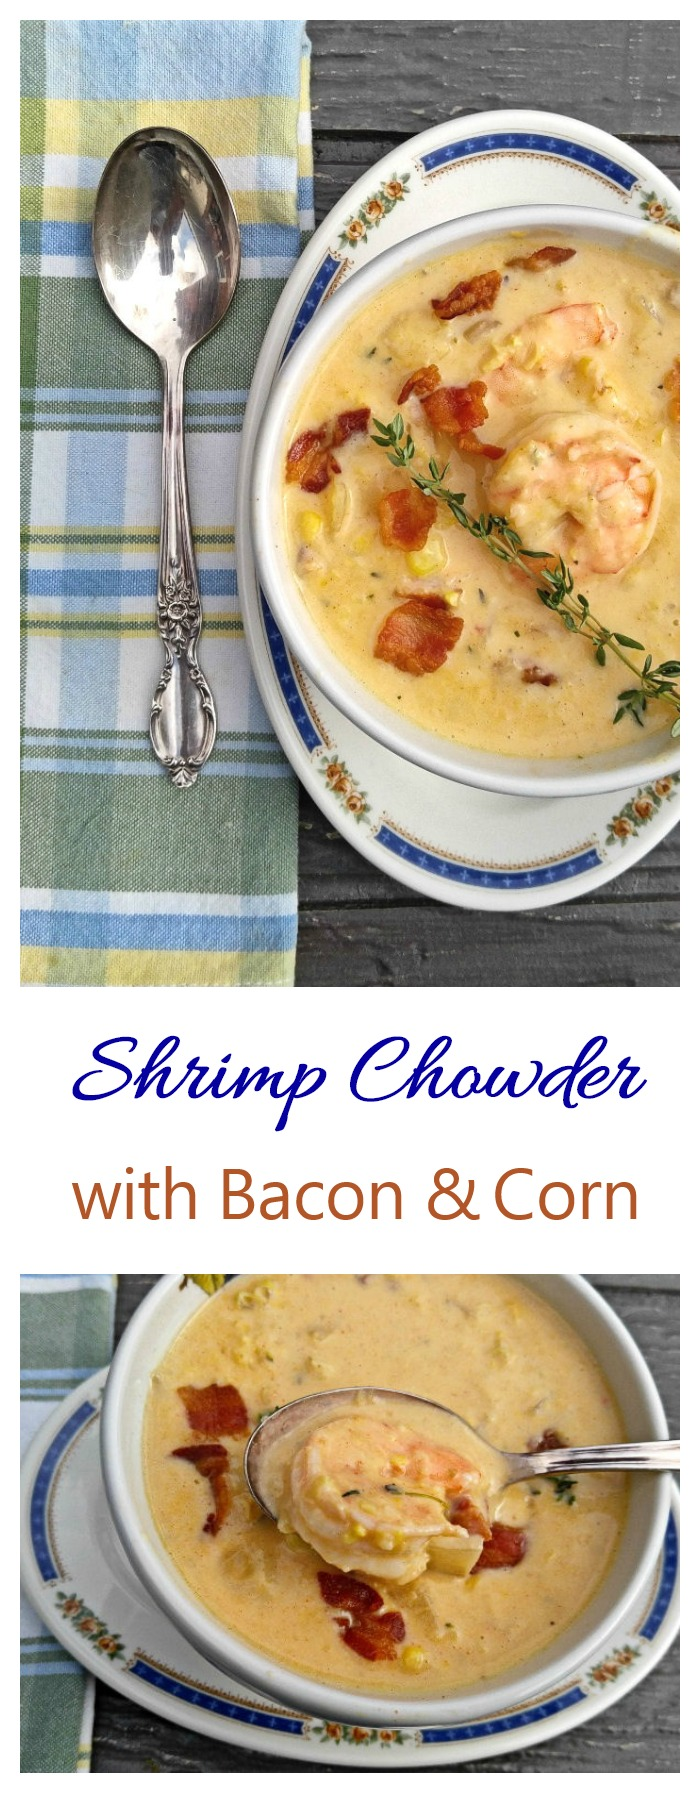 This tasty shrimp chowder recipe is flavored with corn, bacon and fresh thyme. #shrimpchowder #shrimpbisque